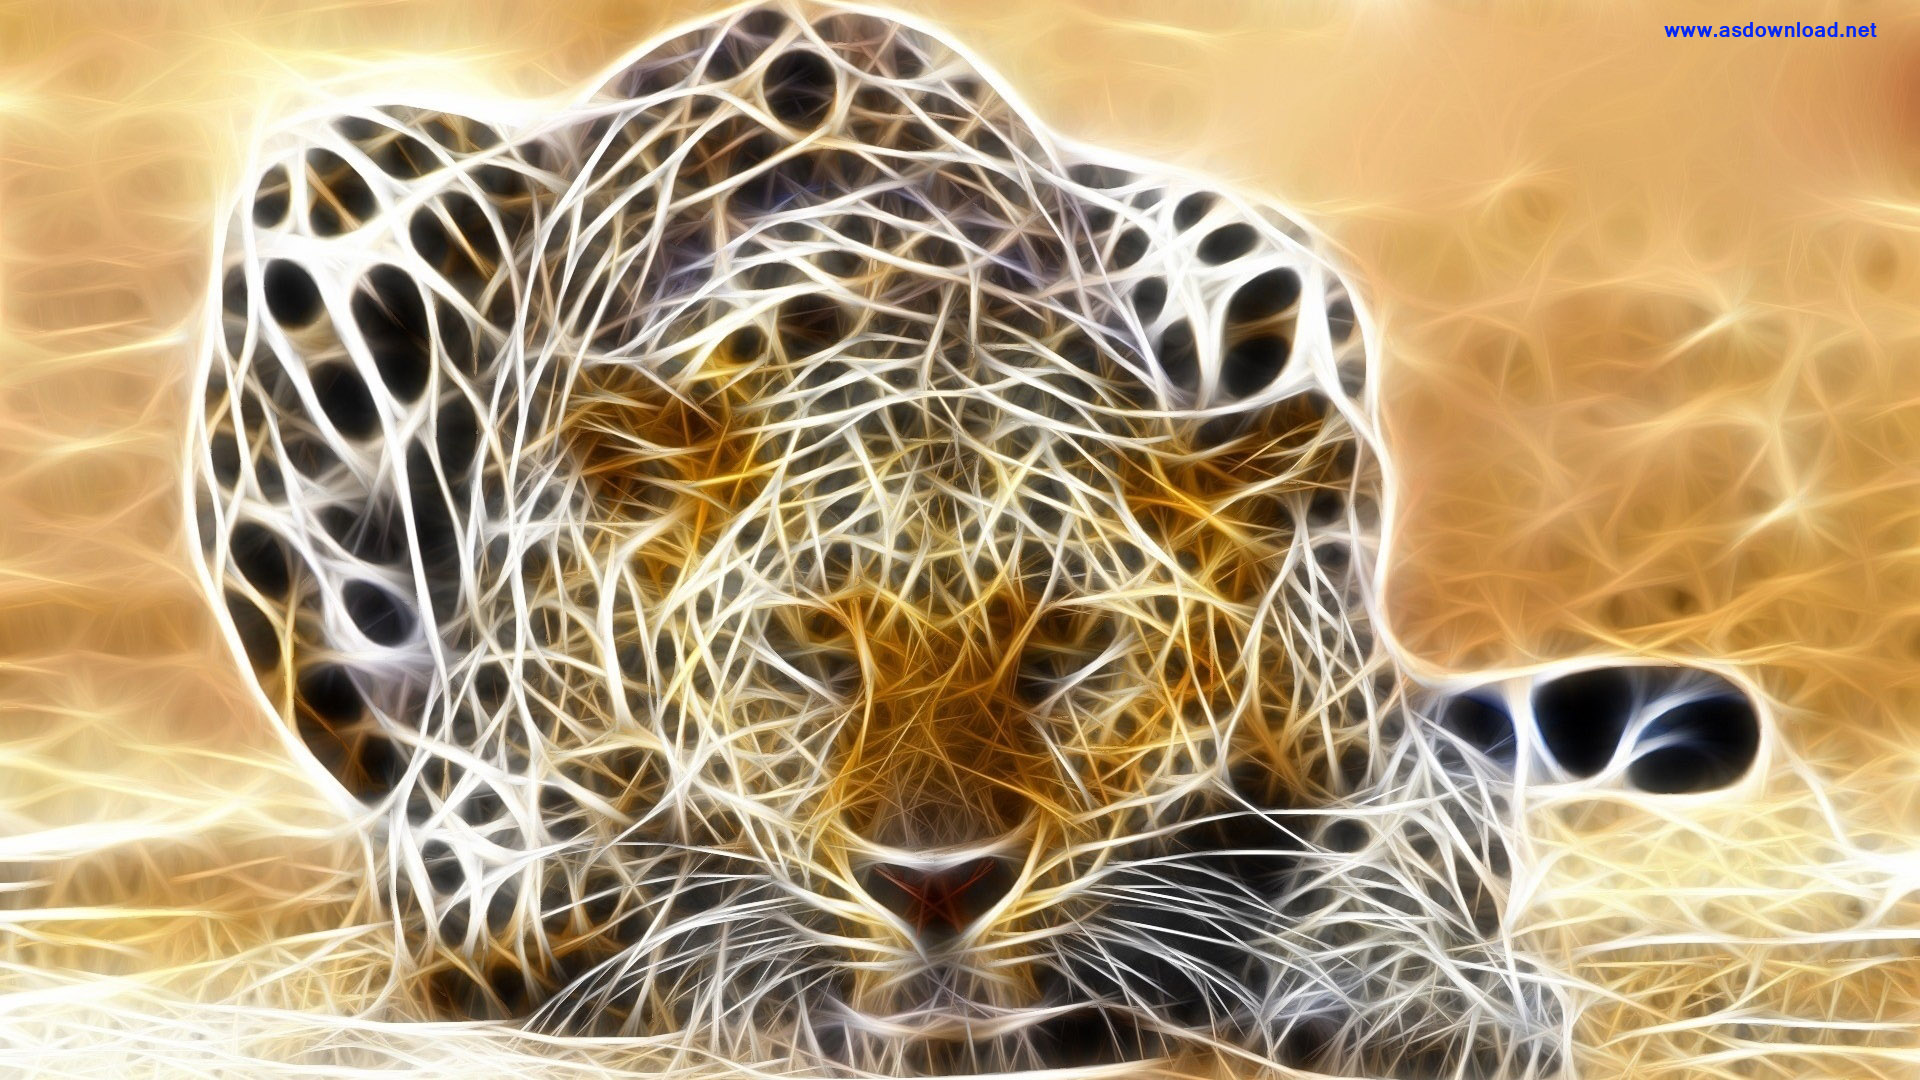 Jaguar-3D-Render-Fantasy-Wallpaper